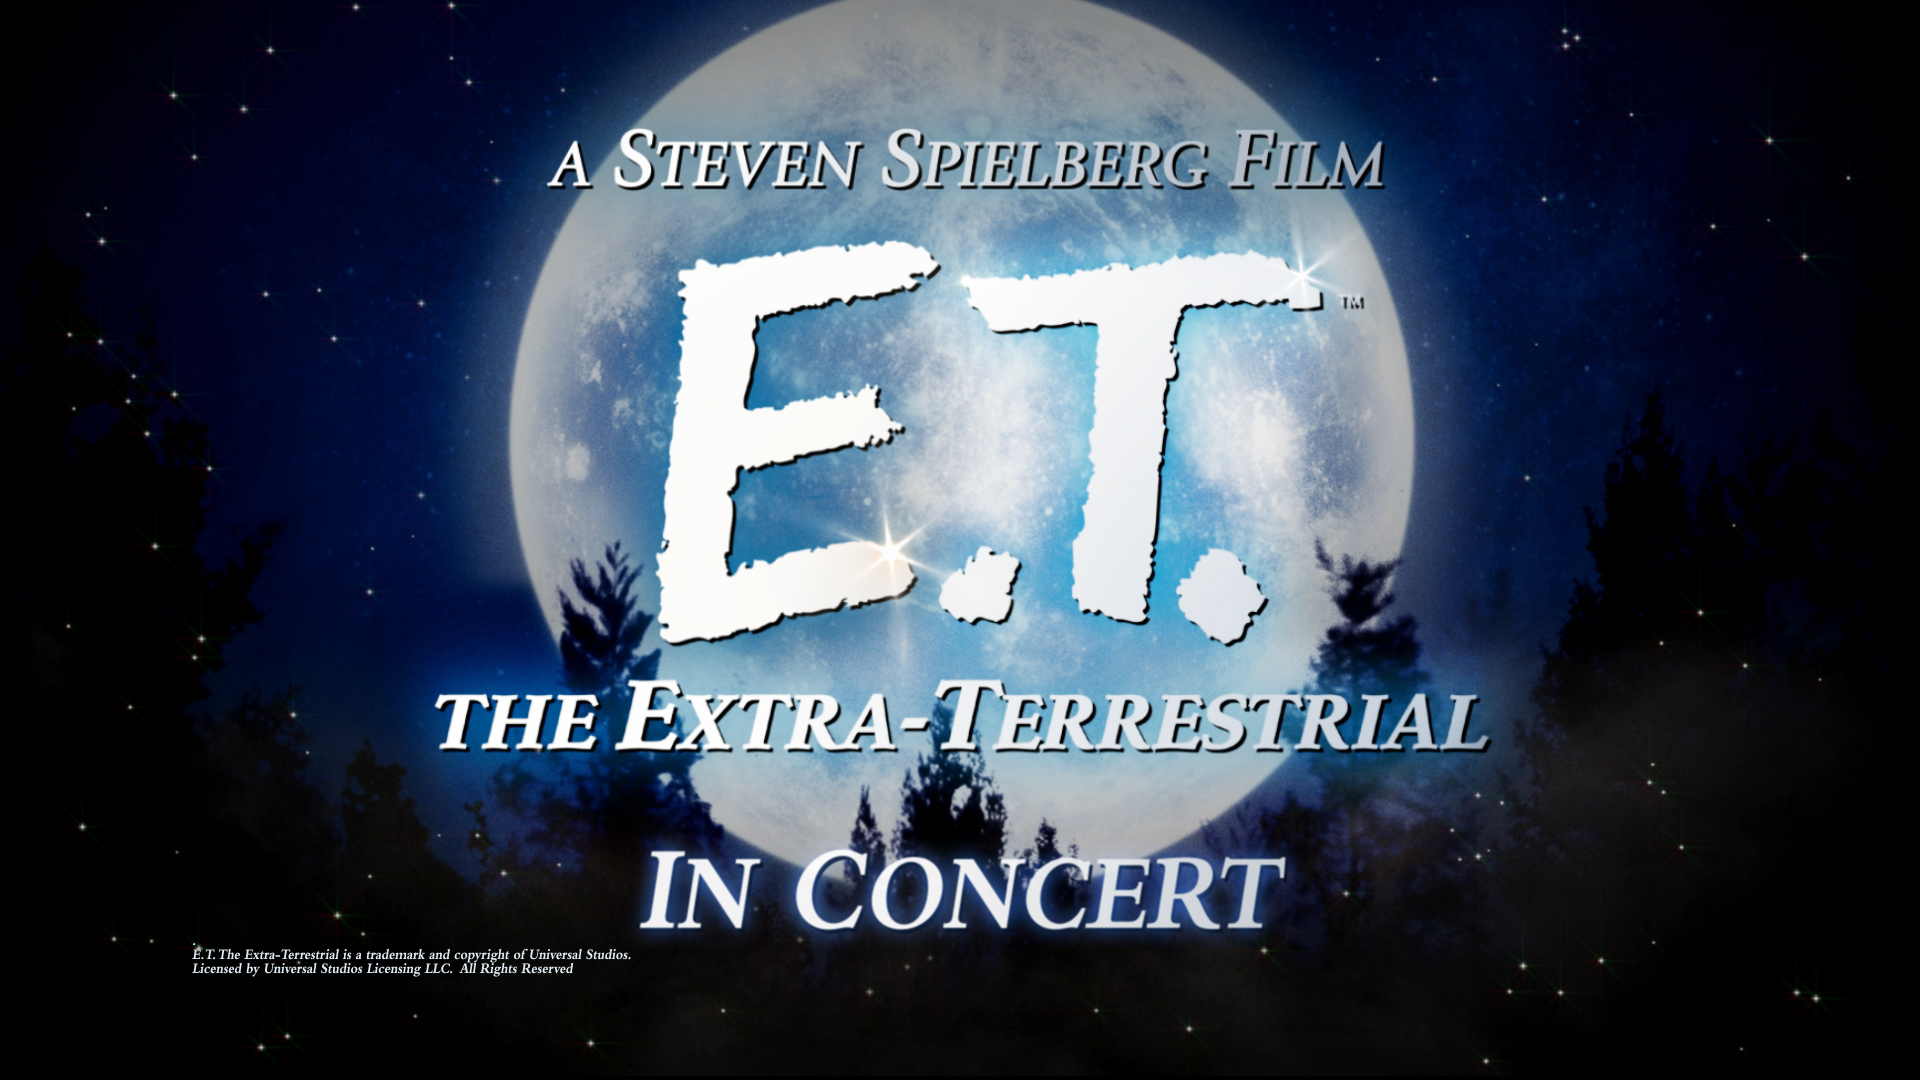 West Virginia Symphony Orchestra: E.T. the Extra-Terrestrial, Movie with Live Orchestra